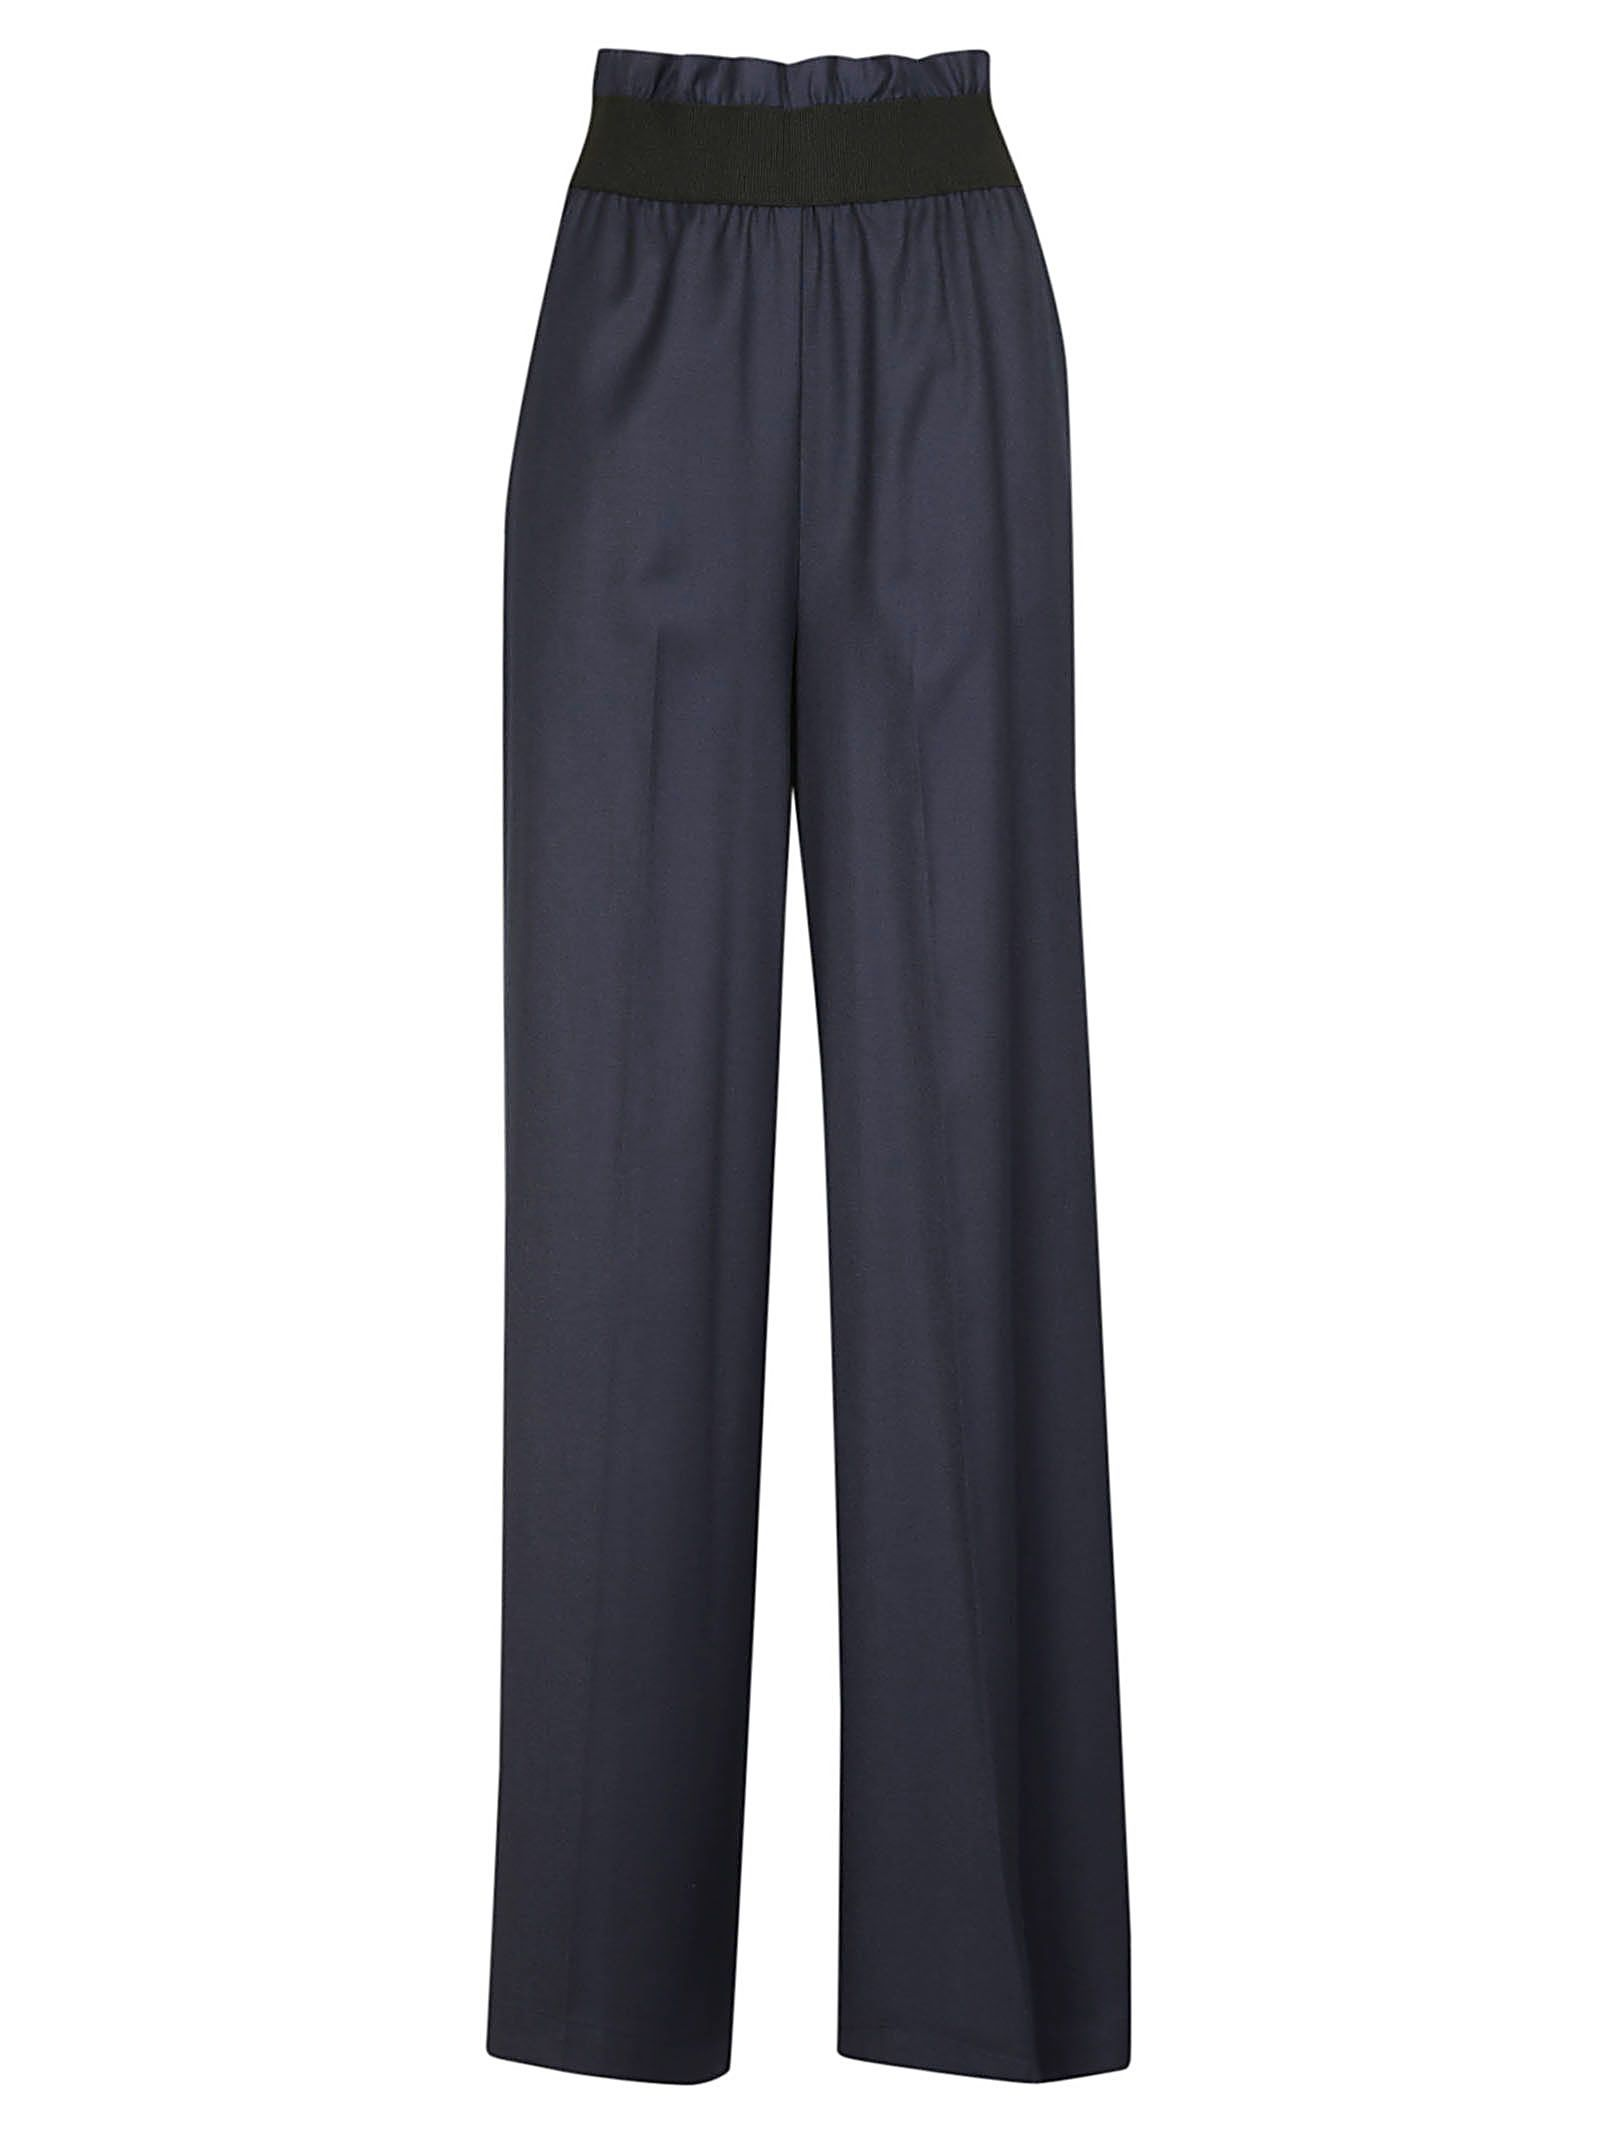 Semicouture Paperbag Waist Trousers